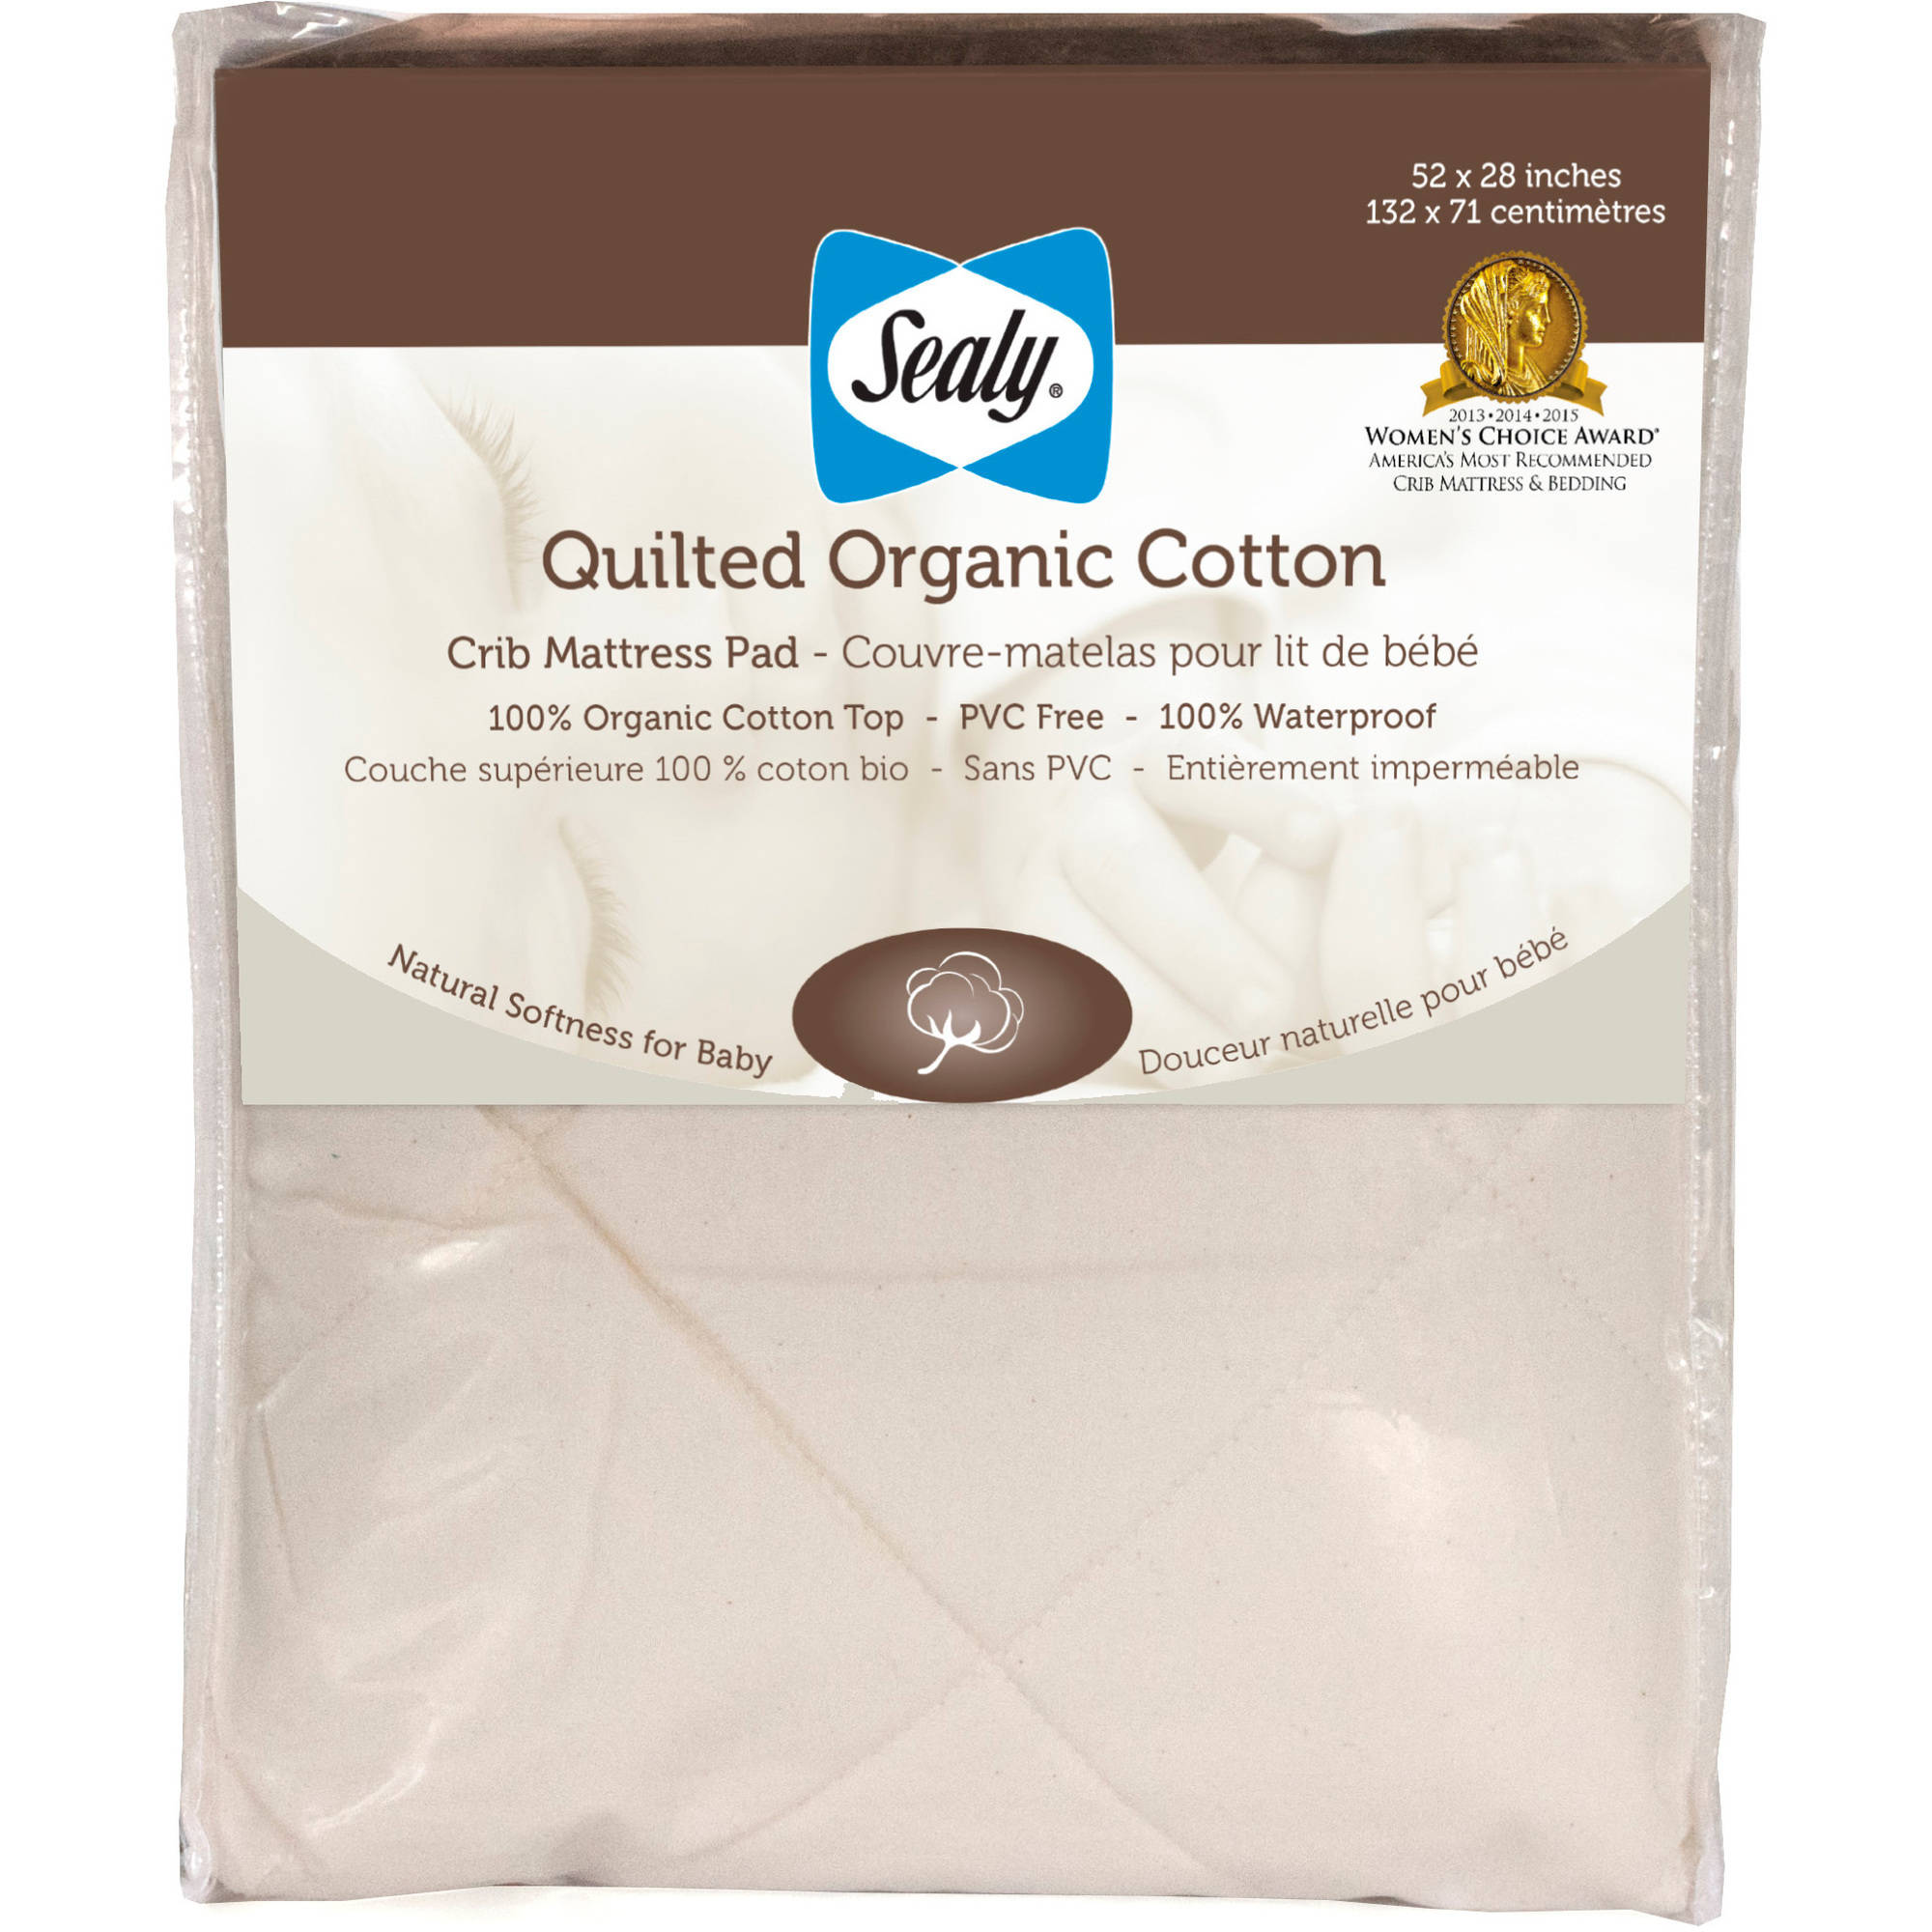 Sealy Quilted Organic Cotton Crib Mattress Pad